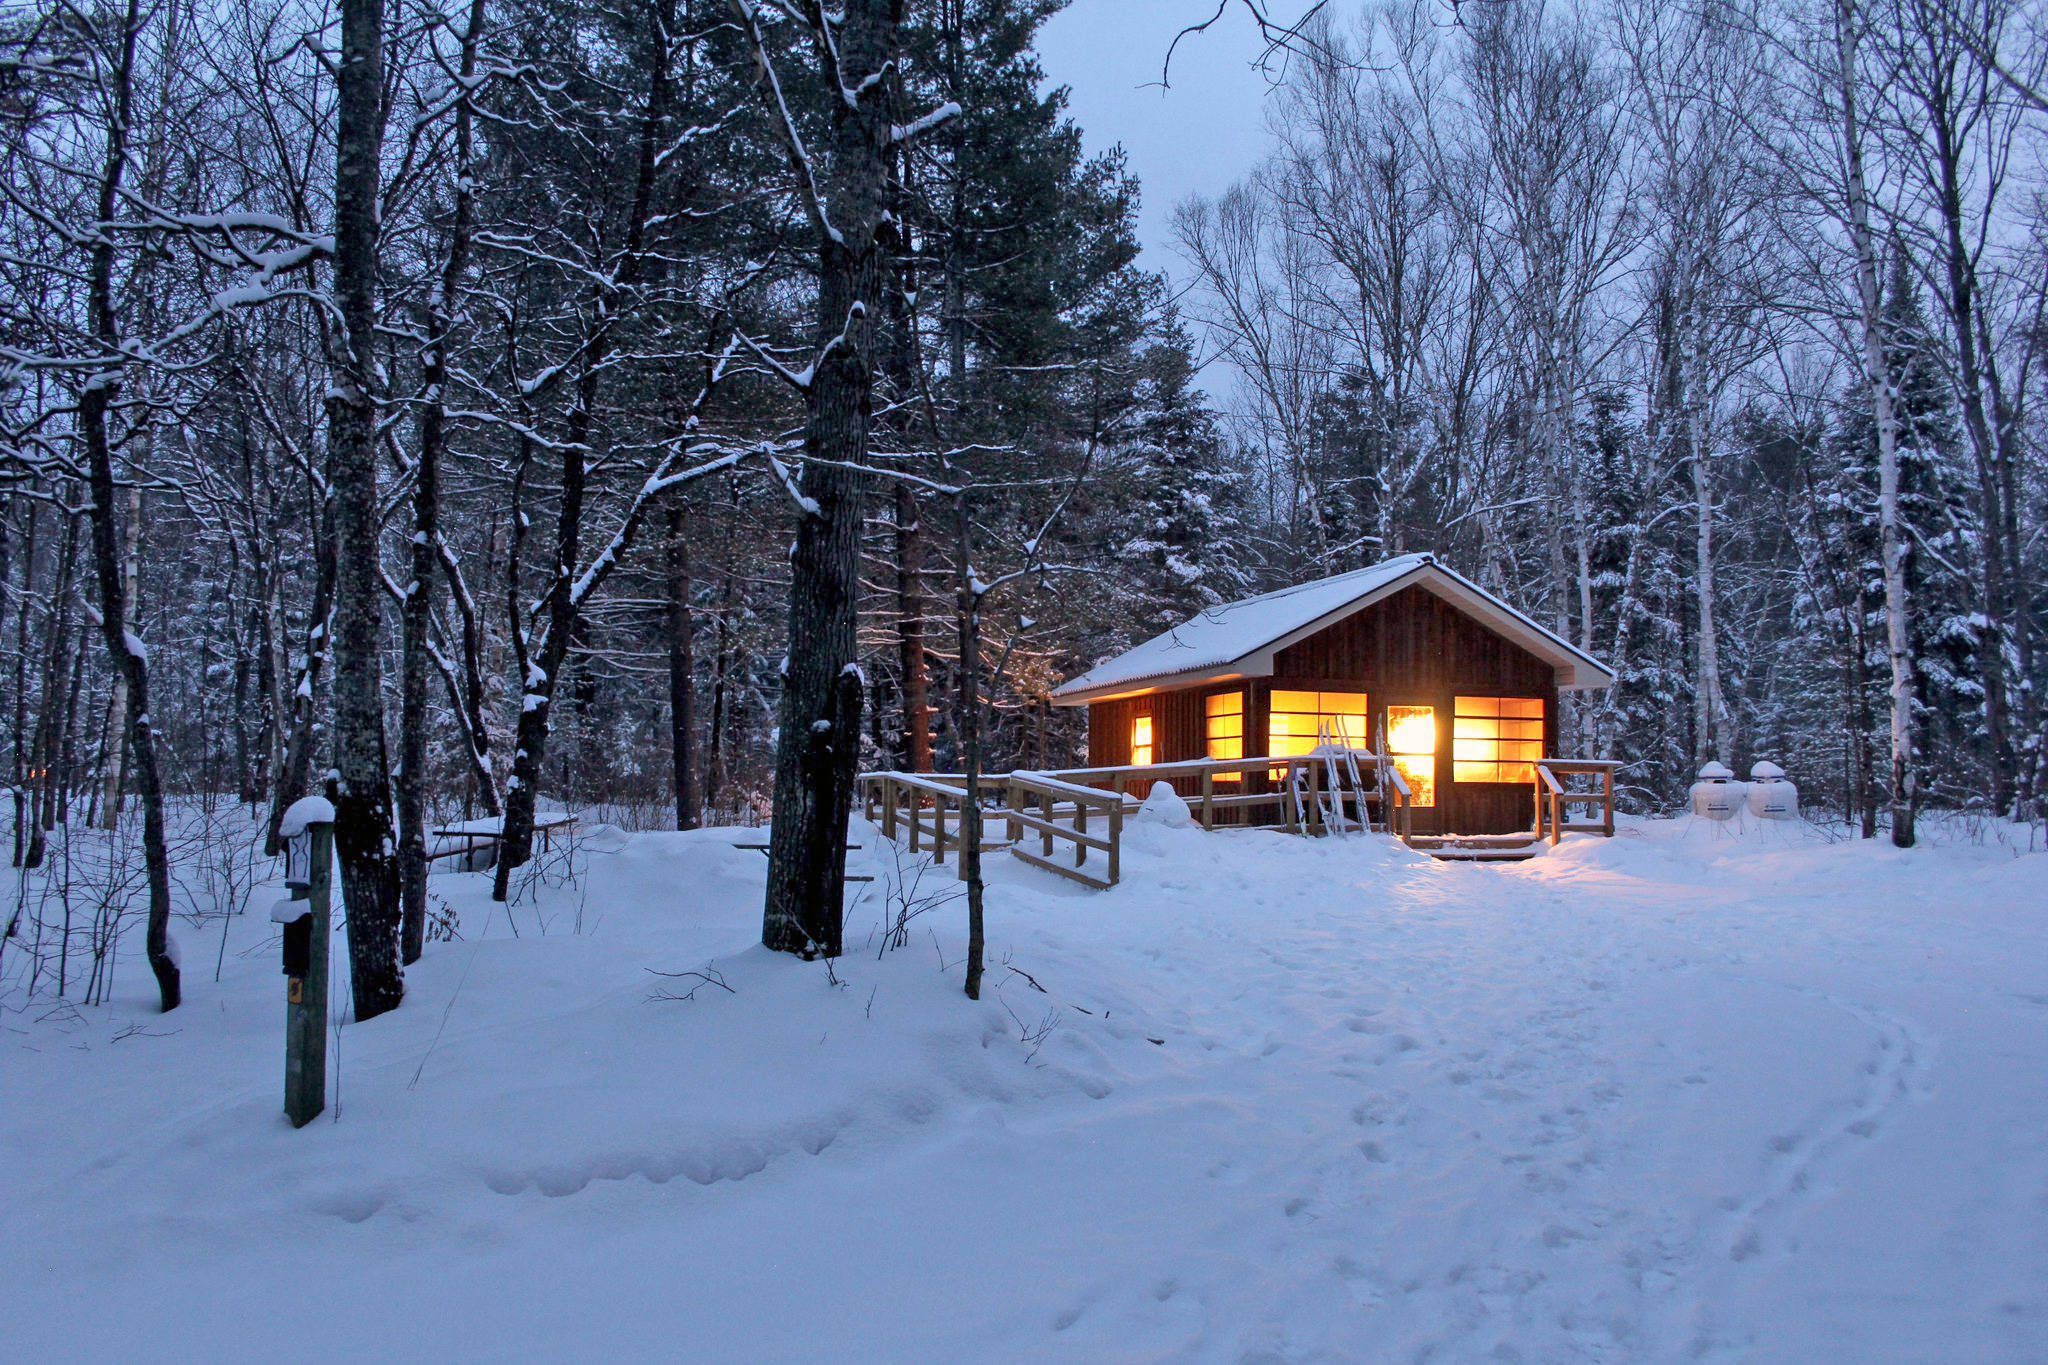 Winter Home in woods